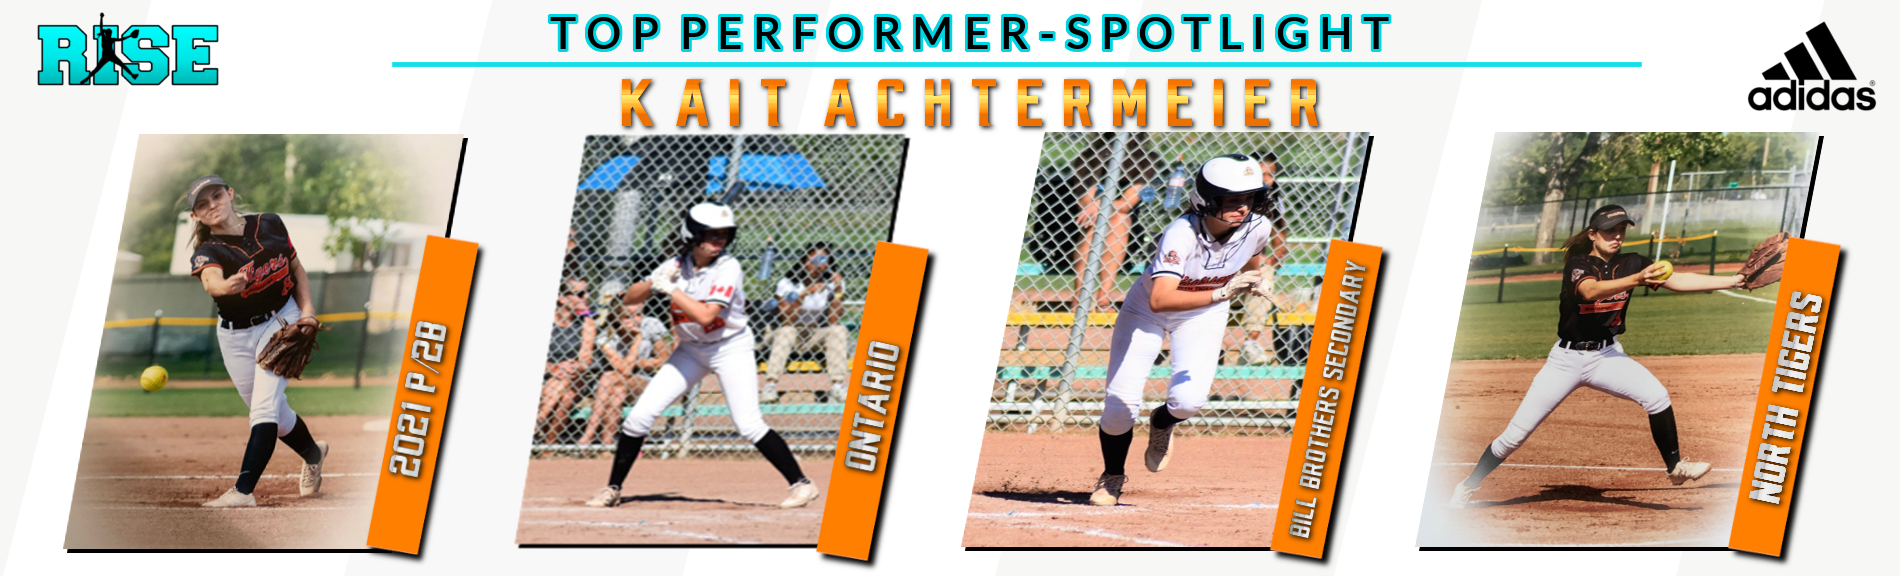 Top Performer -Spotlight